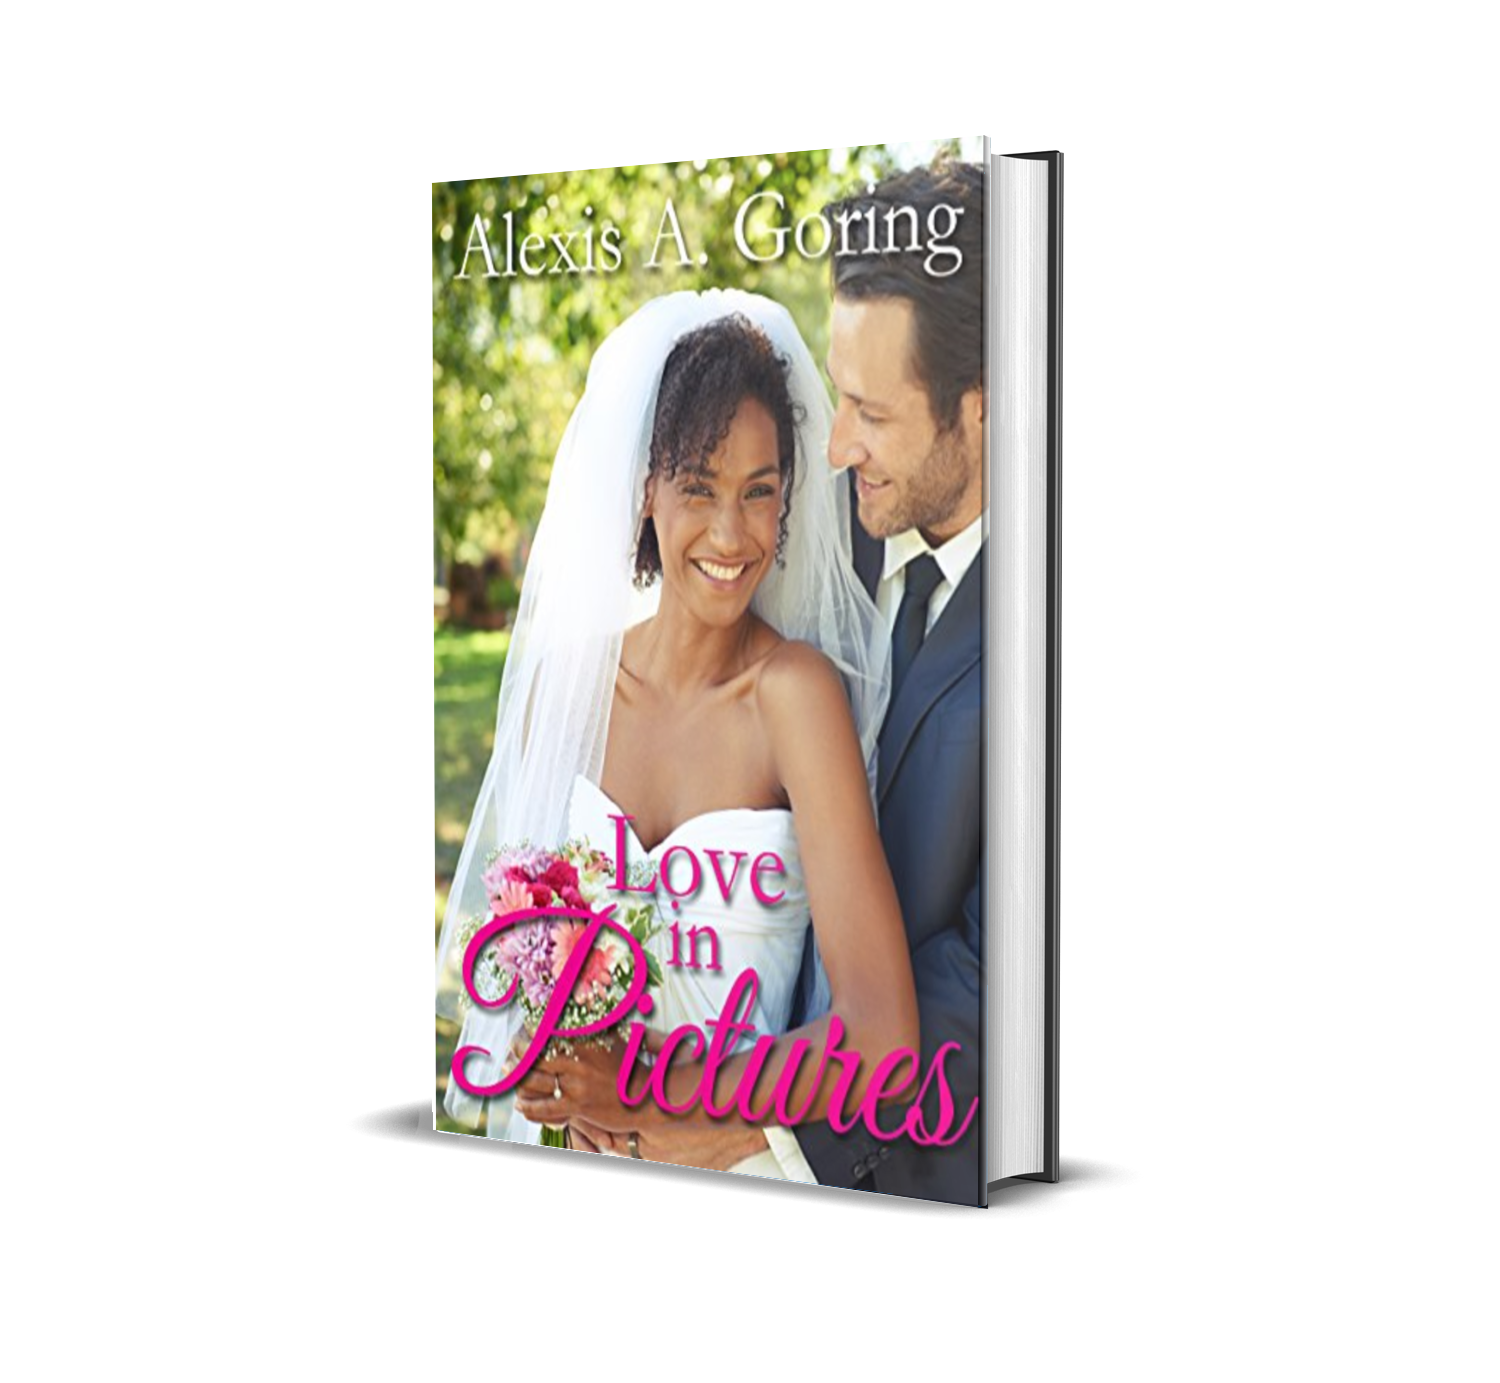 Love in Pictures by Alexis A. Goring